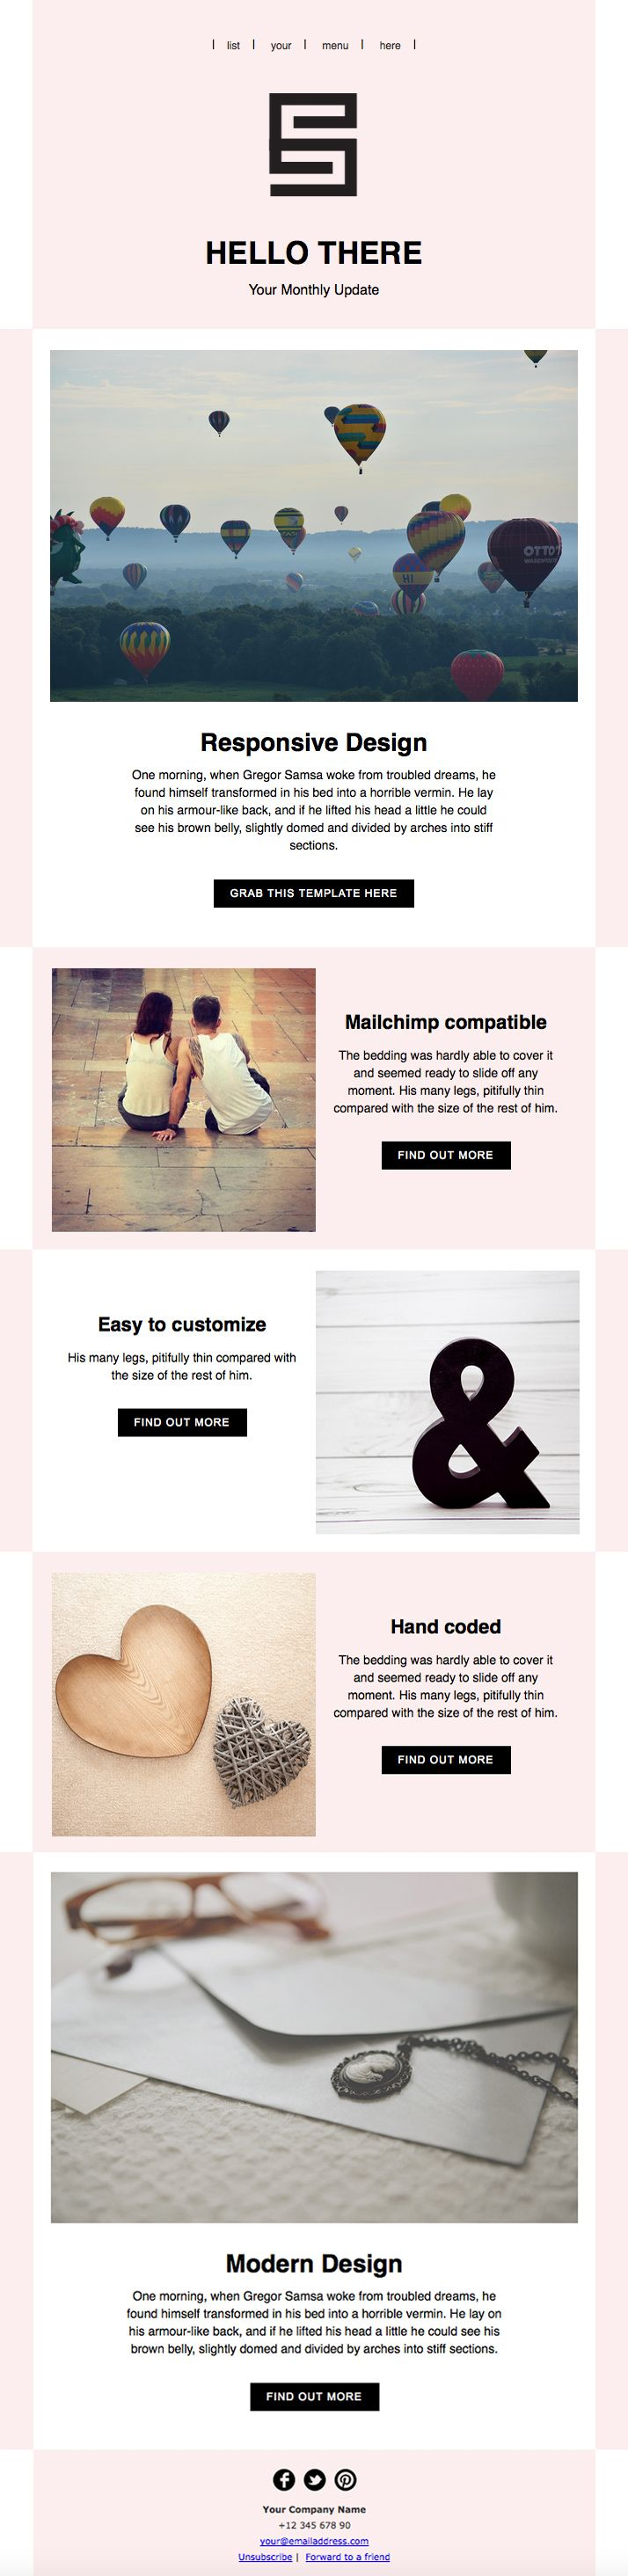 Responsive Email Newsletter Template. HTML coded, Mailchimp compatible, fully customizable.